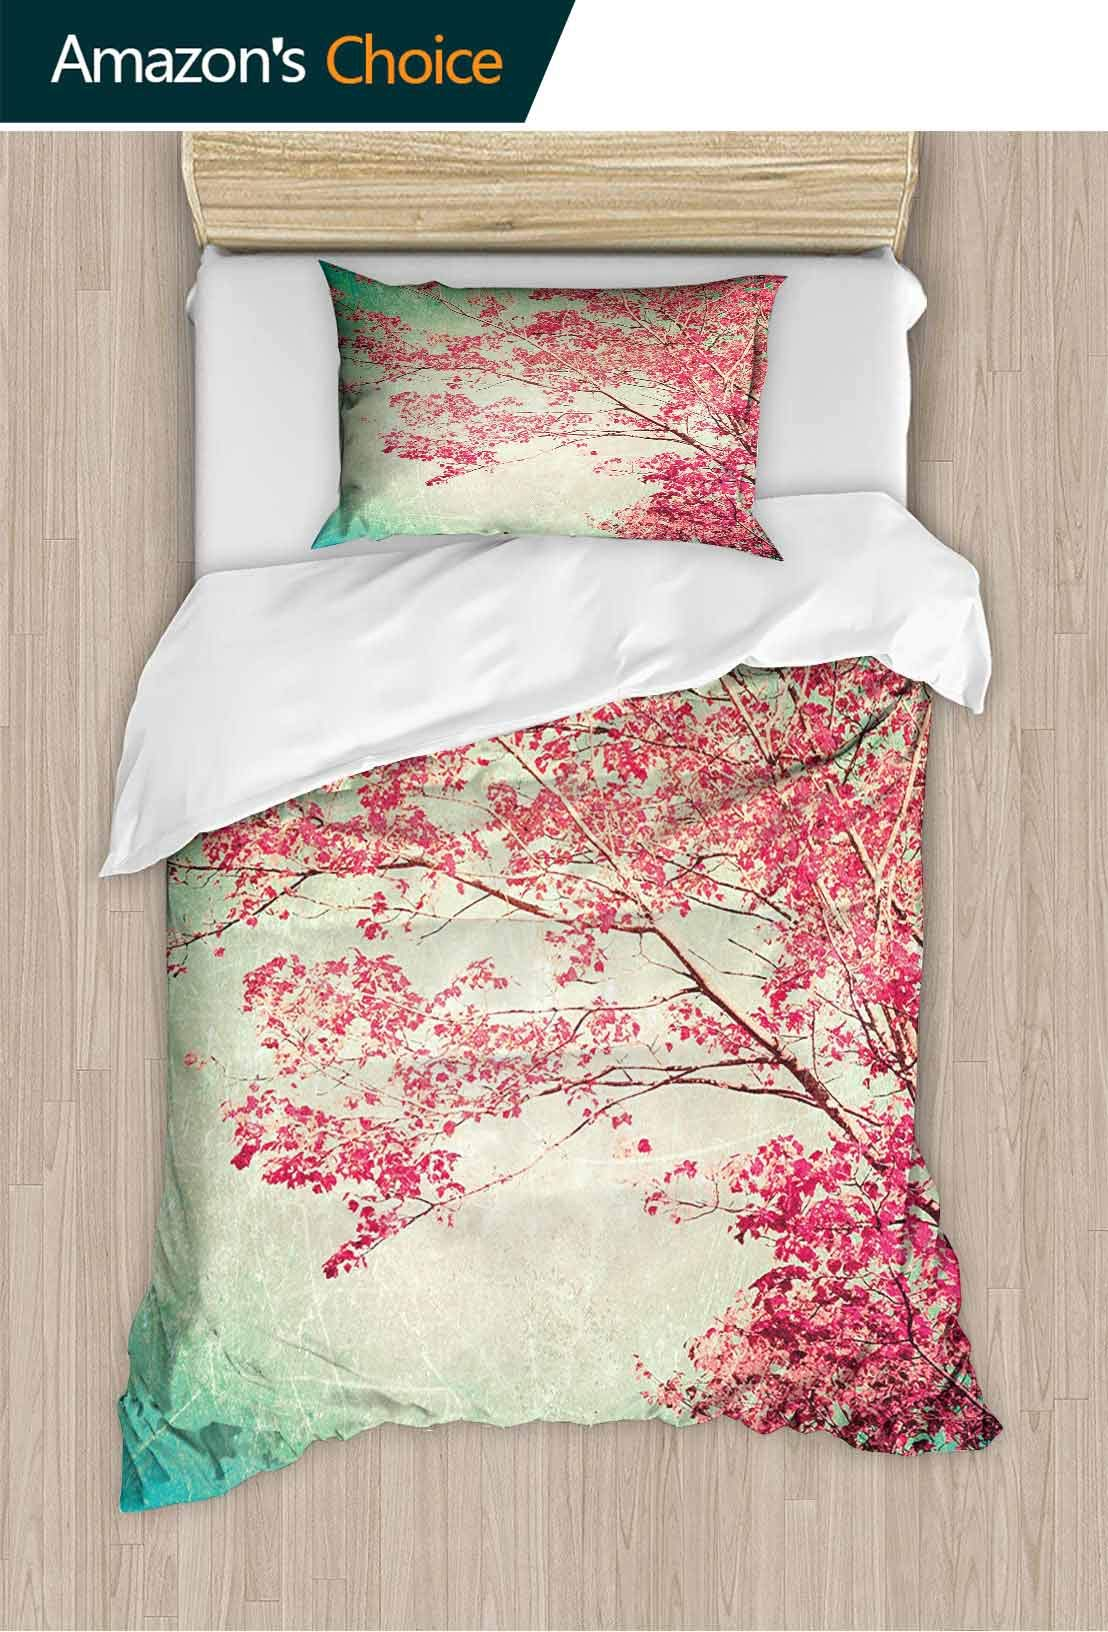 PRUNUSHOME Polyester Bedding Florets Ancient Tree Aged Grungy Nature Display M t Green Ultra Soft Hypoallergenic California King